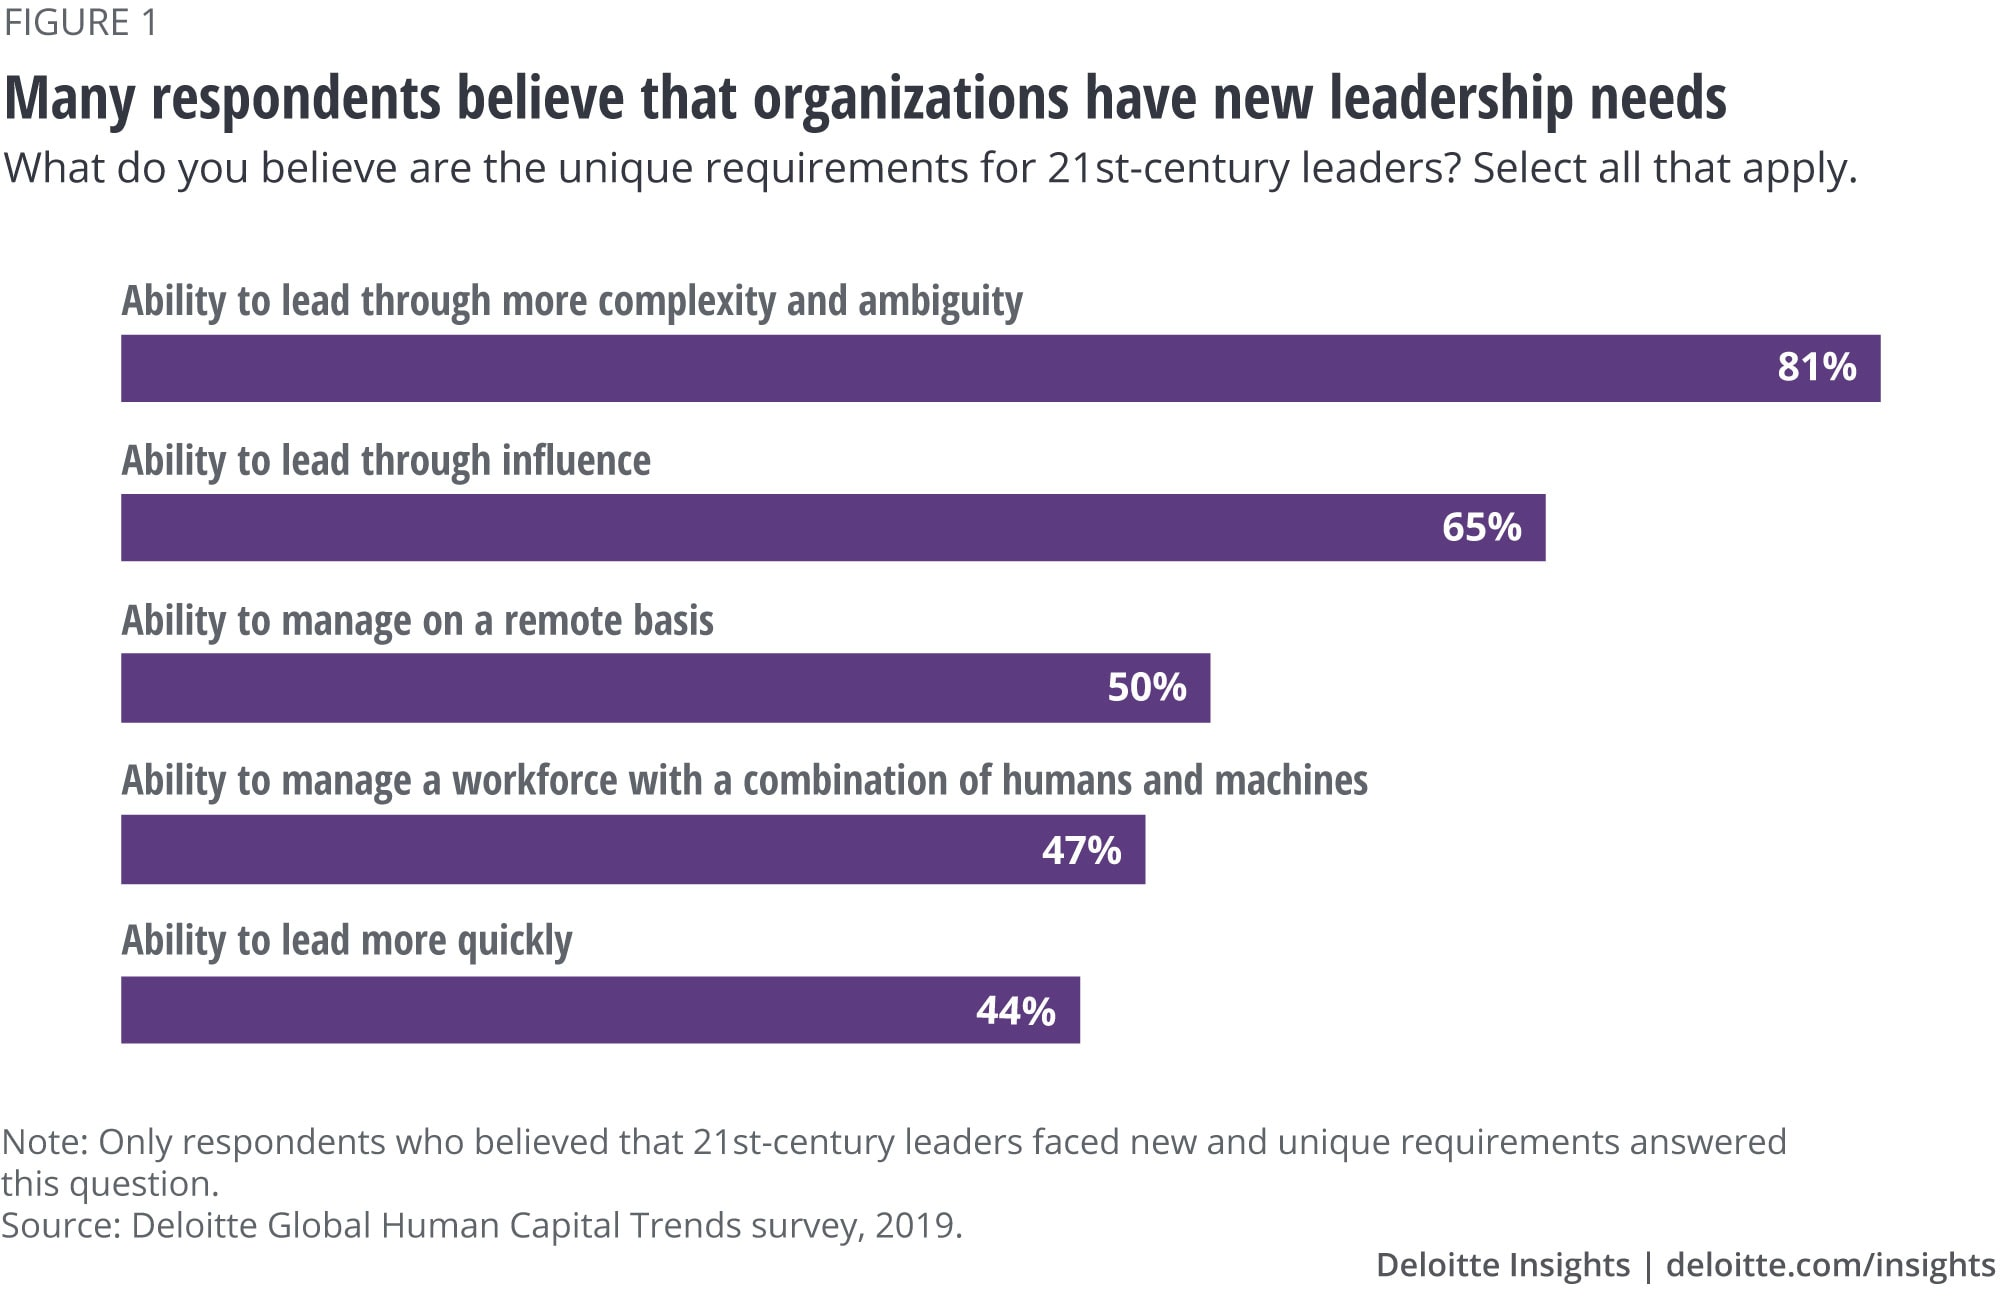 Many respondents believe that organizations have new leadership needs